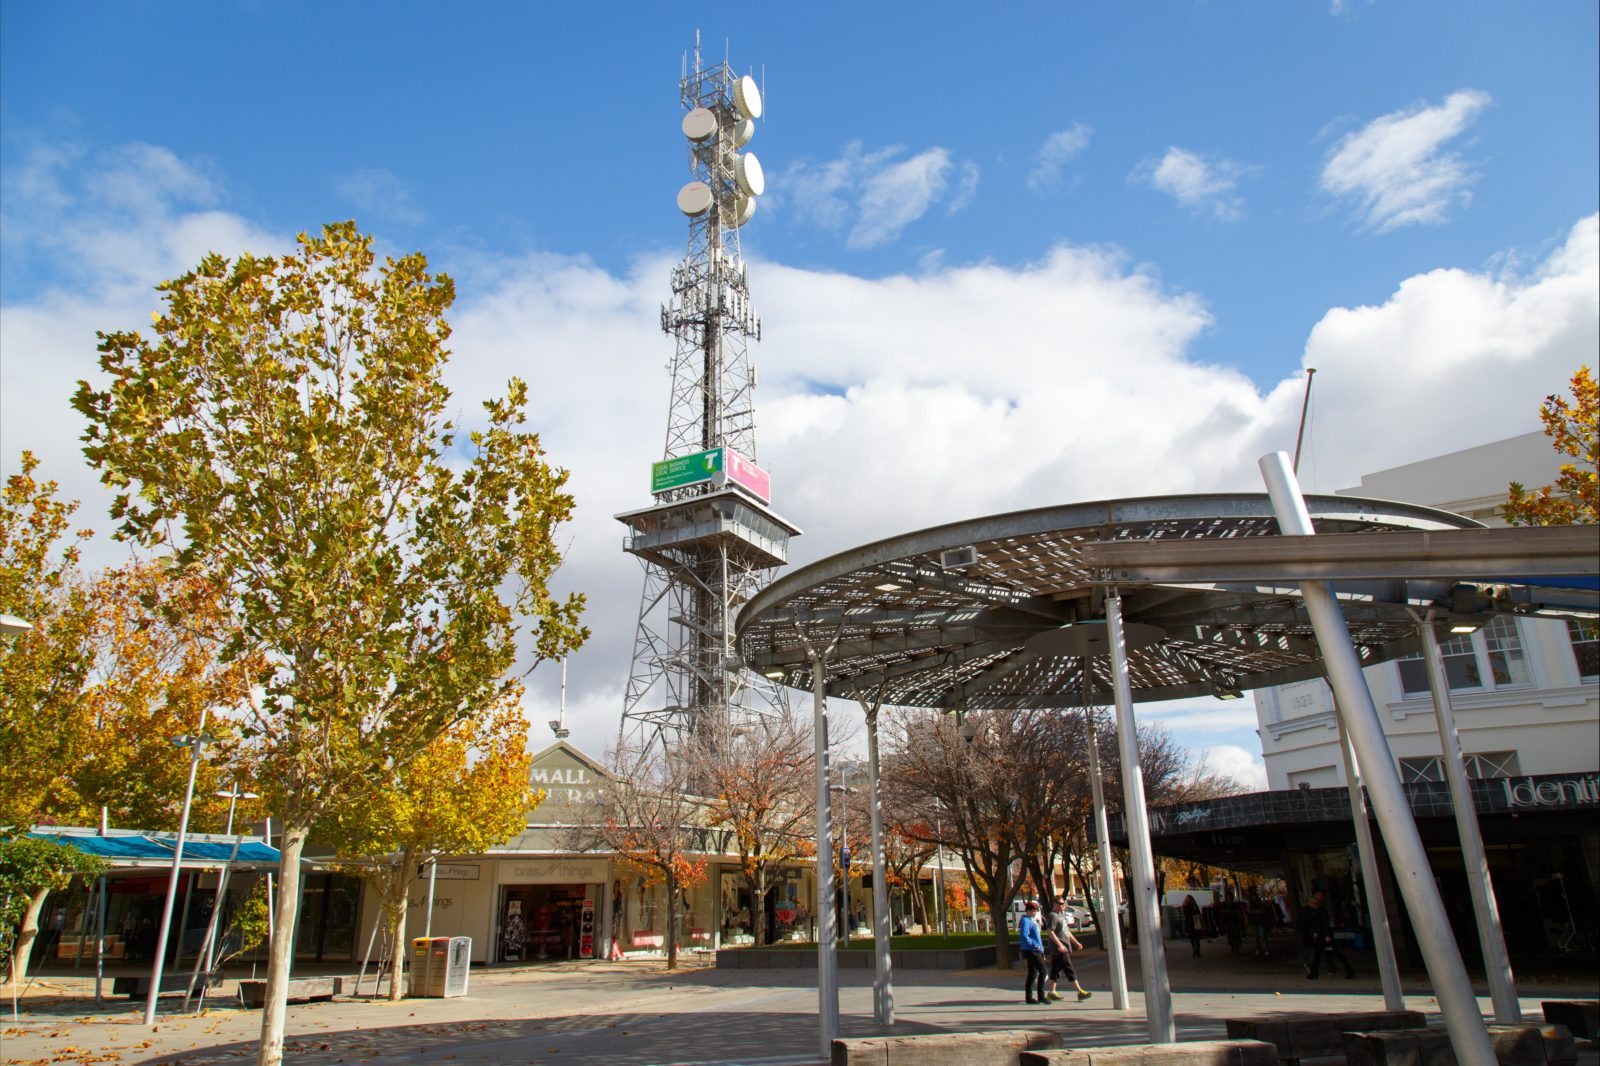 Shepparton Tower from Maude Street Mall